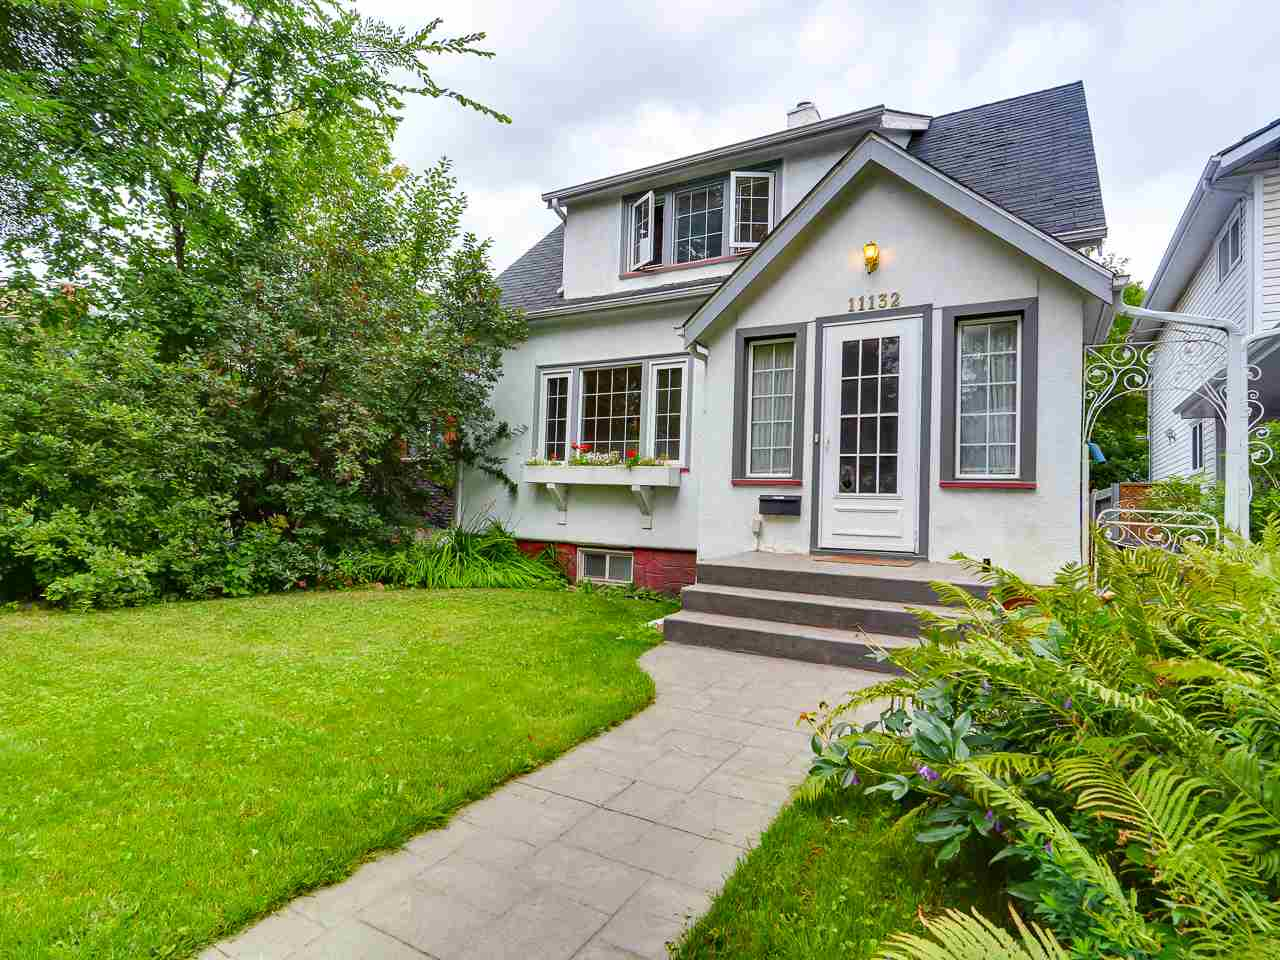 Main Photo: 11132 80 Avenue NW in Edmonton: Zone 15 House for sale : MLS® # E4075976